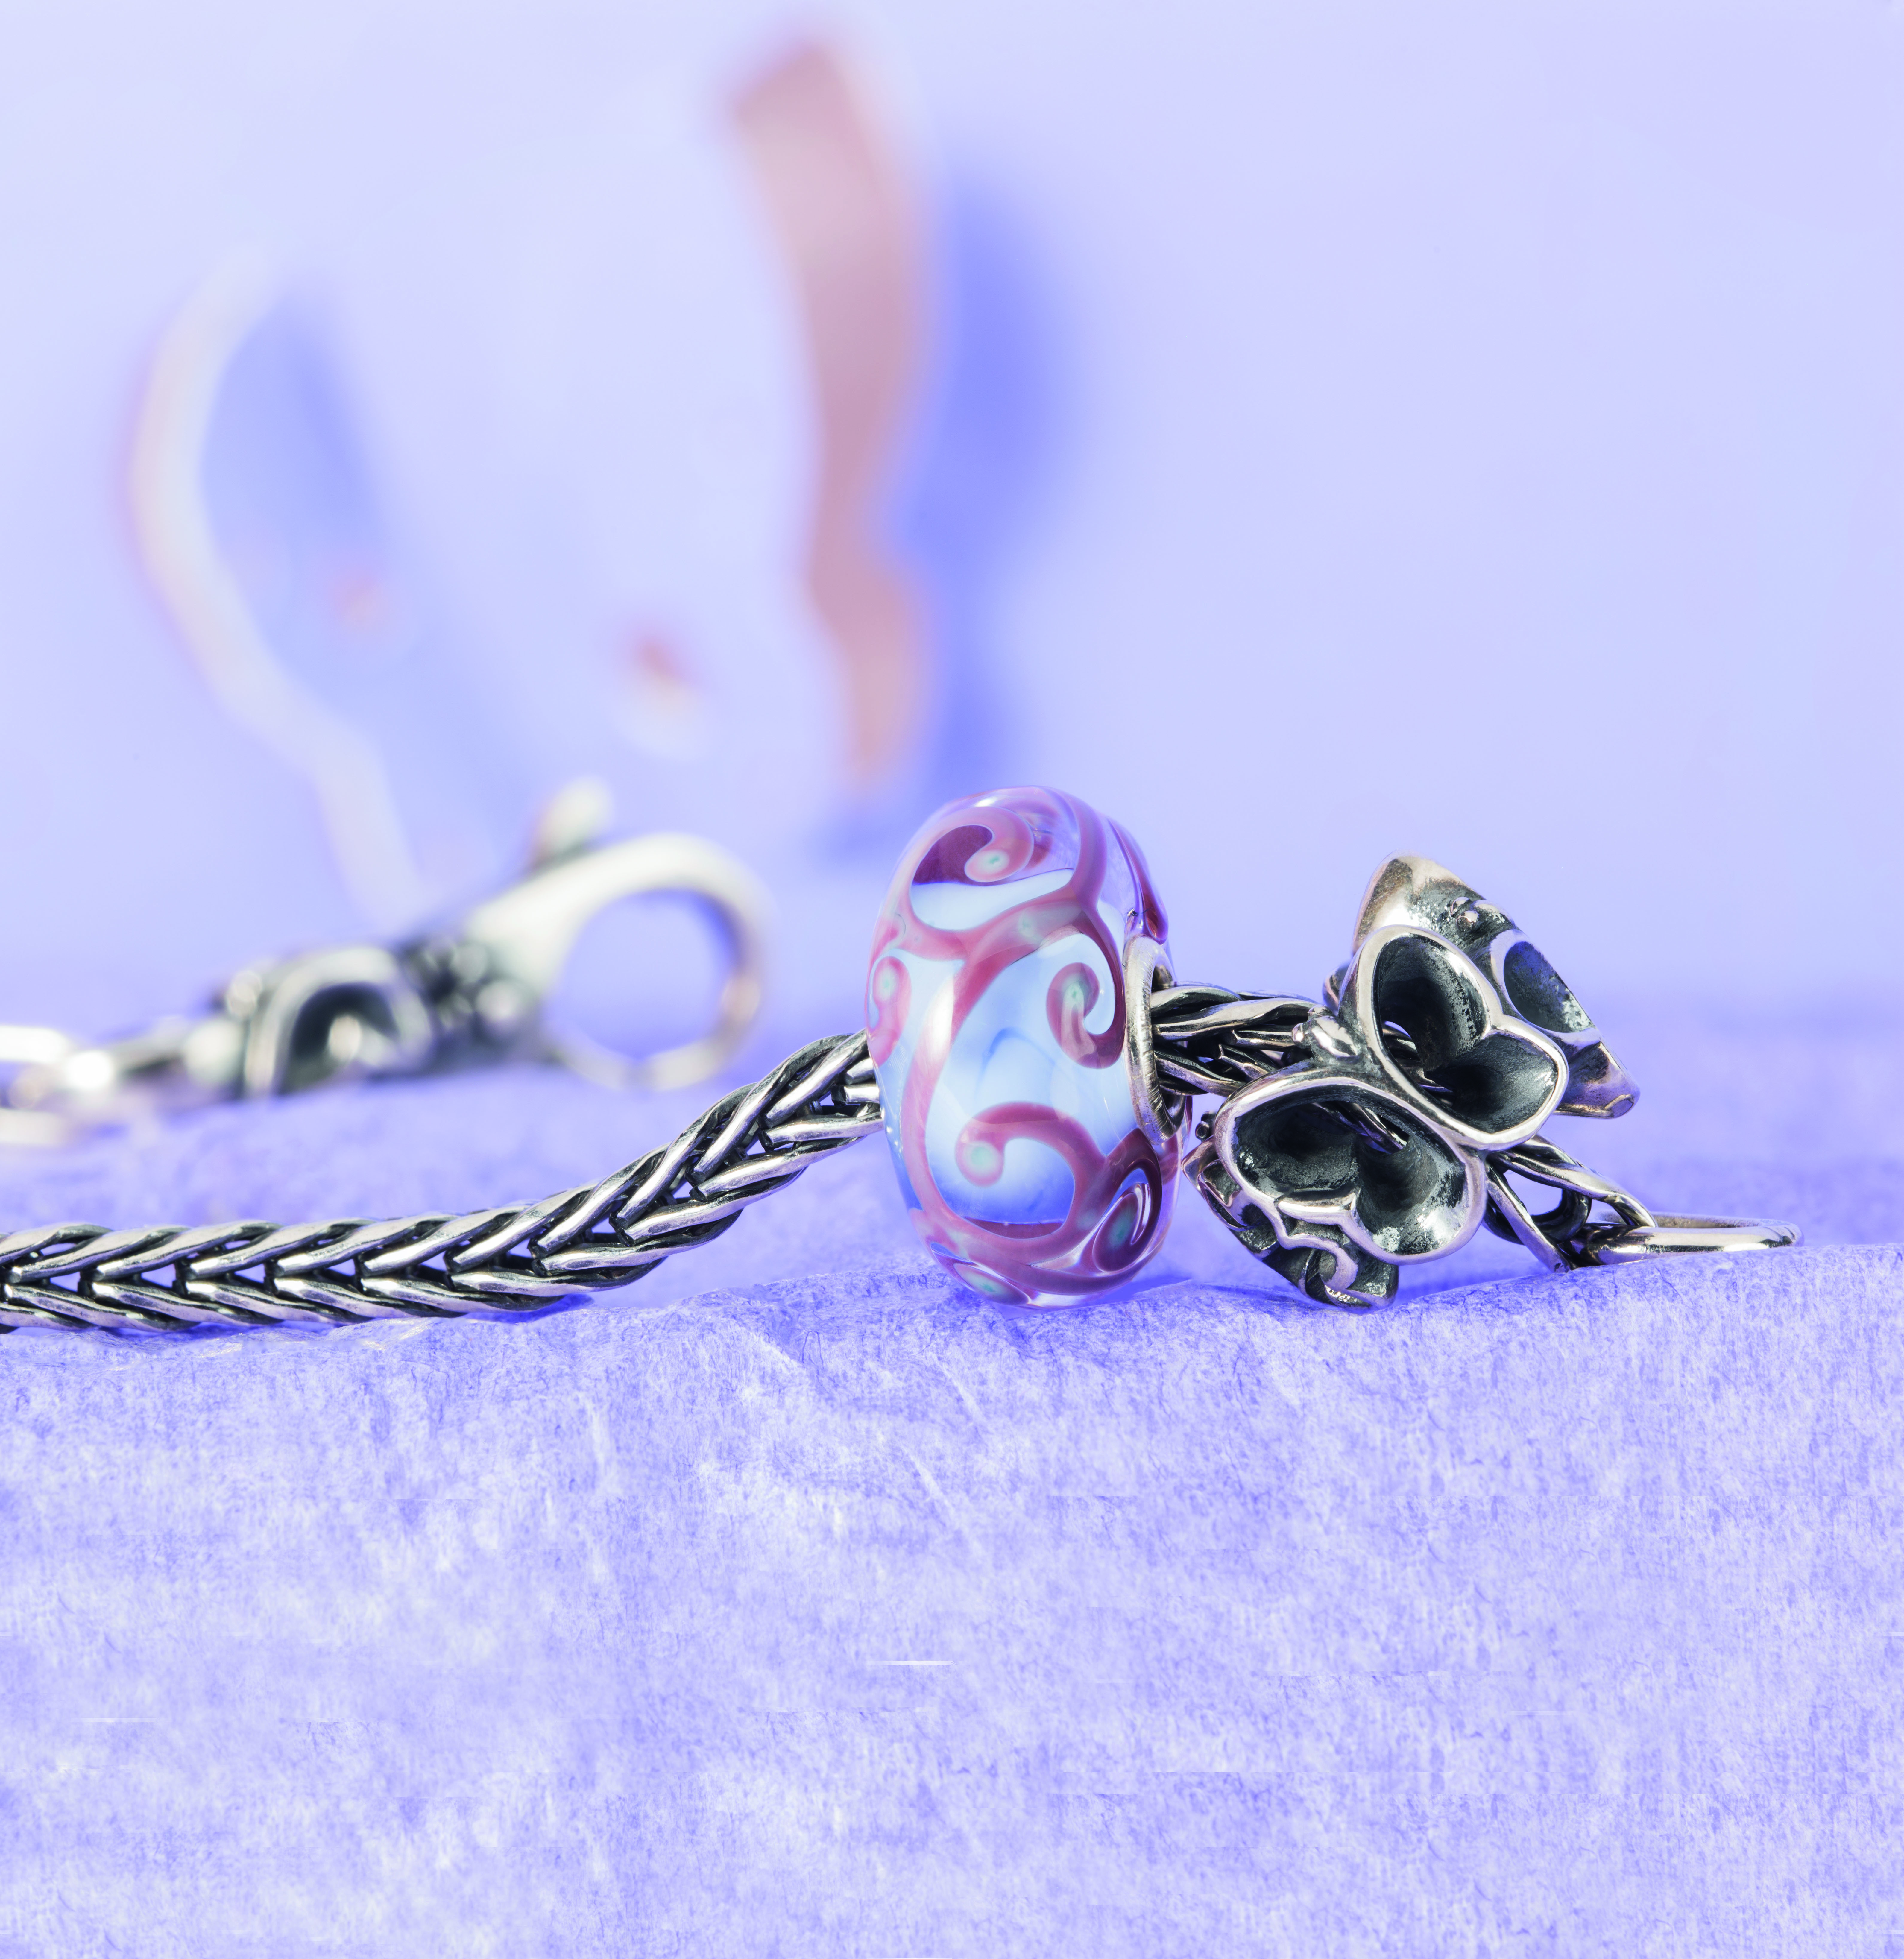 Combine the Flutter By bracelet with other beads from the Trollbeads Collection to create a personal and unique bracelet.